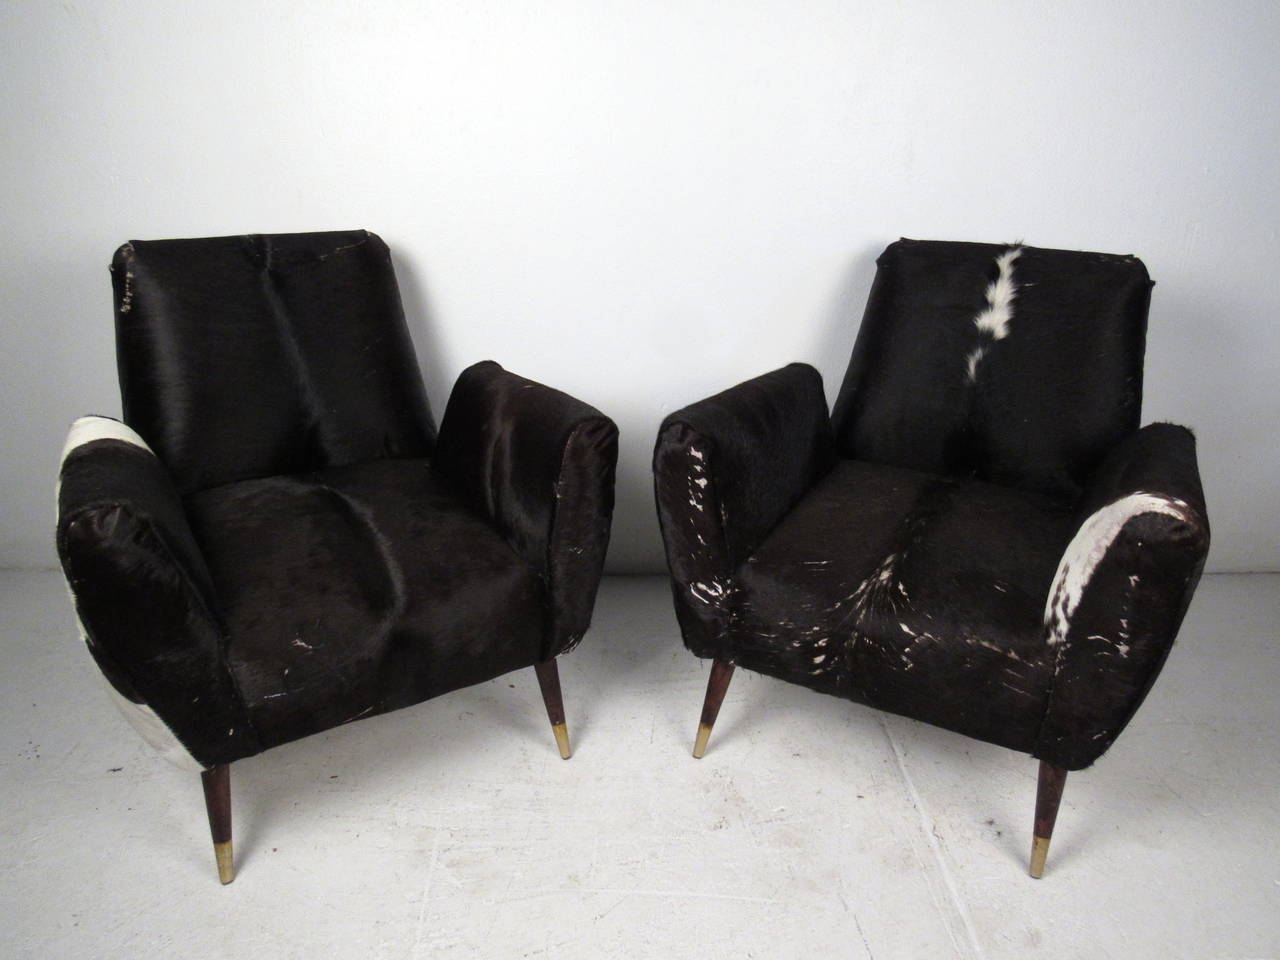 cowhide chairs modern bamboo directors australia pair of mid century lounge at 1stdibs